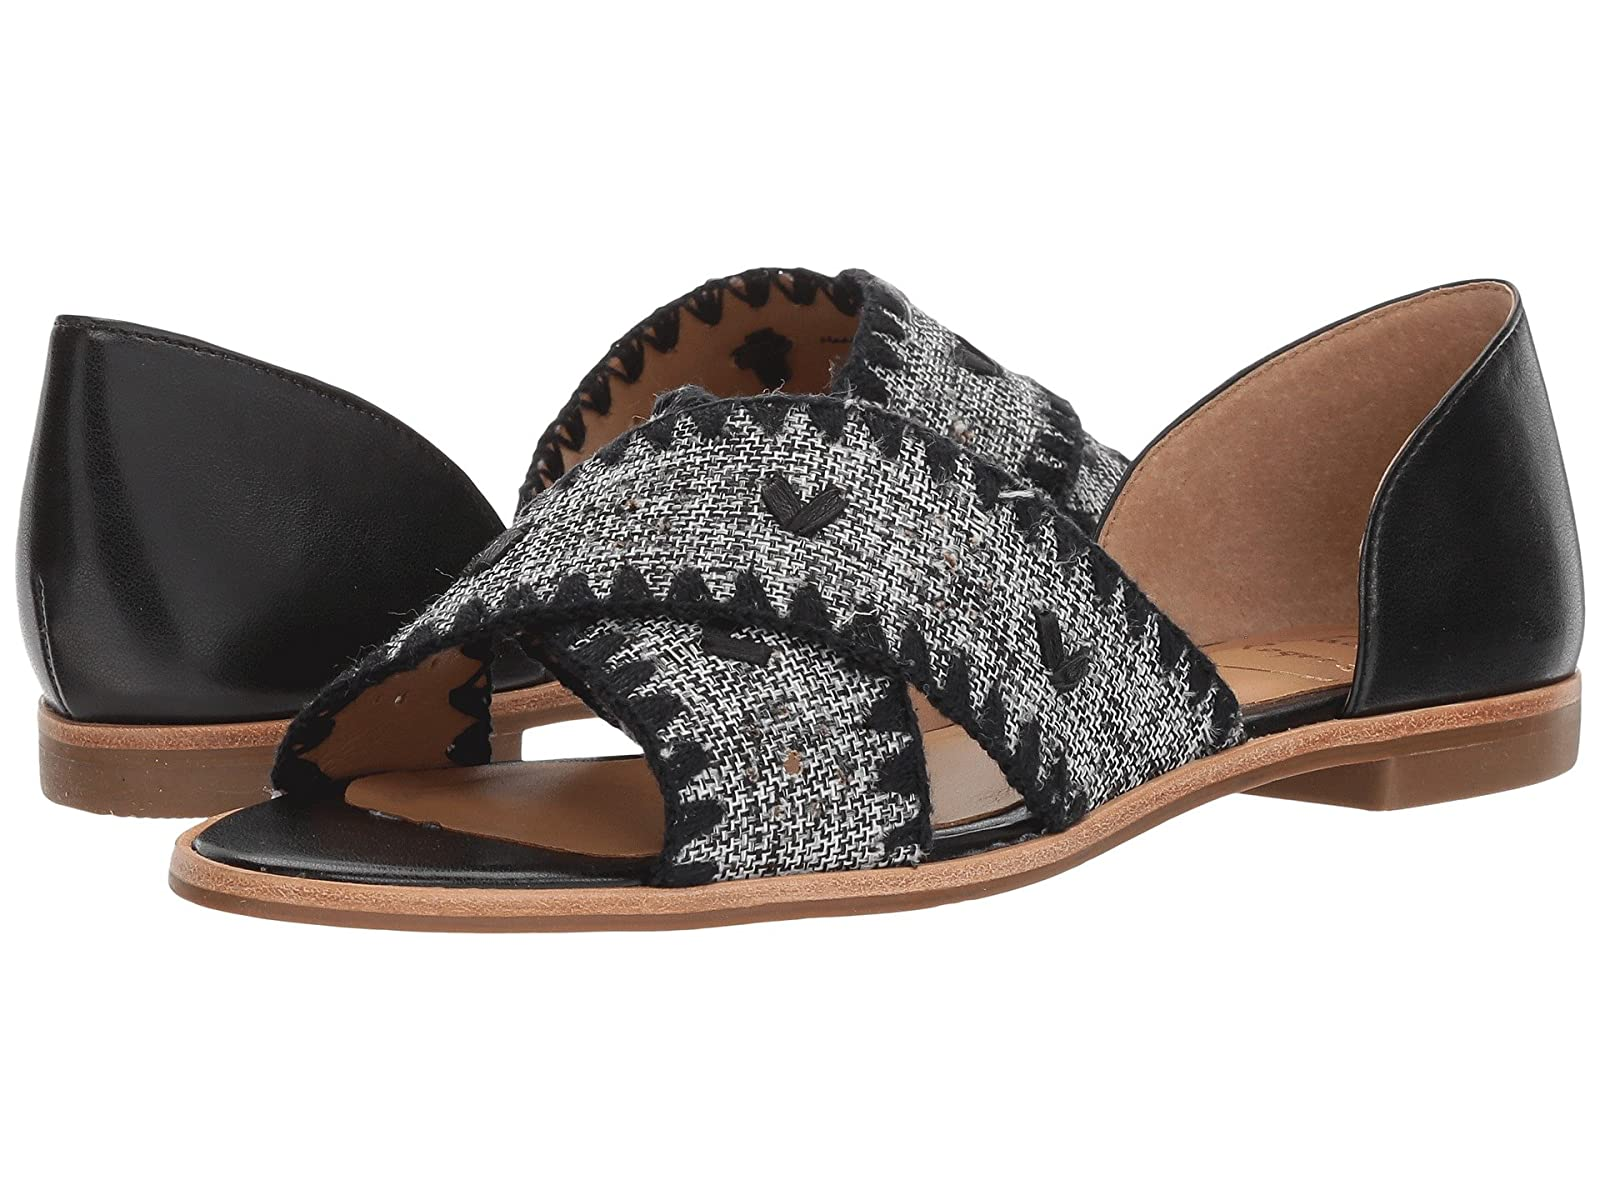 Jack Rogers LindseyCheap and distinctive eye-catching shoes